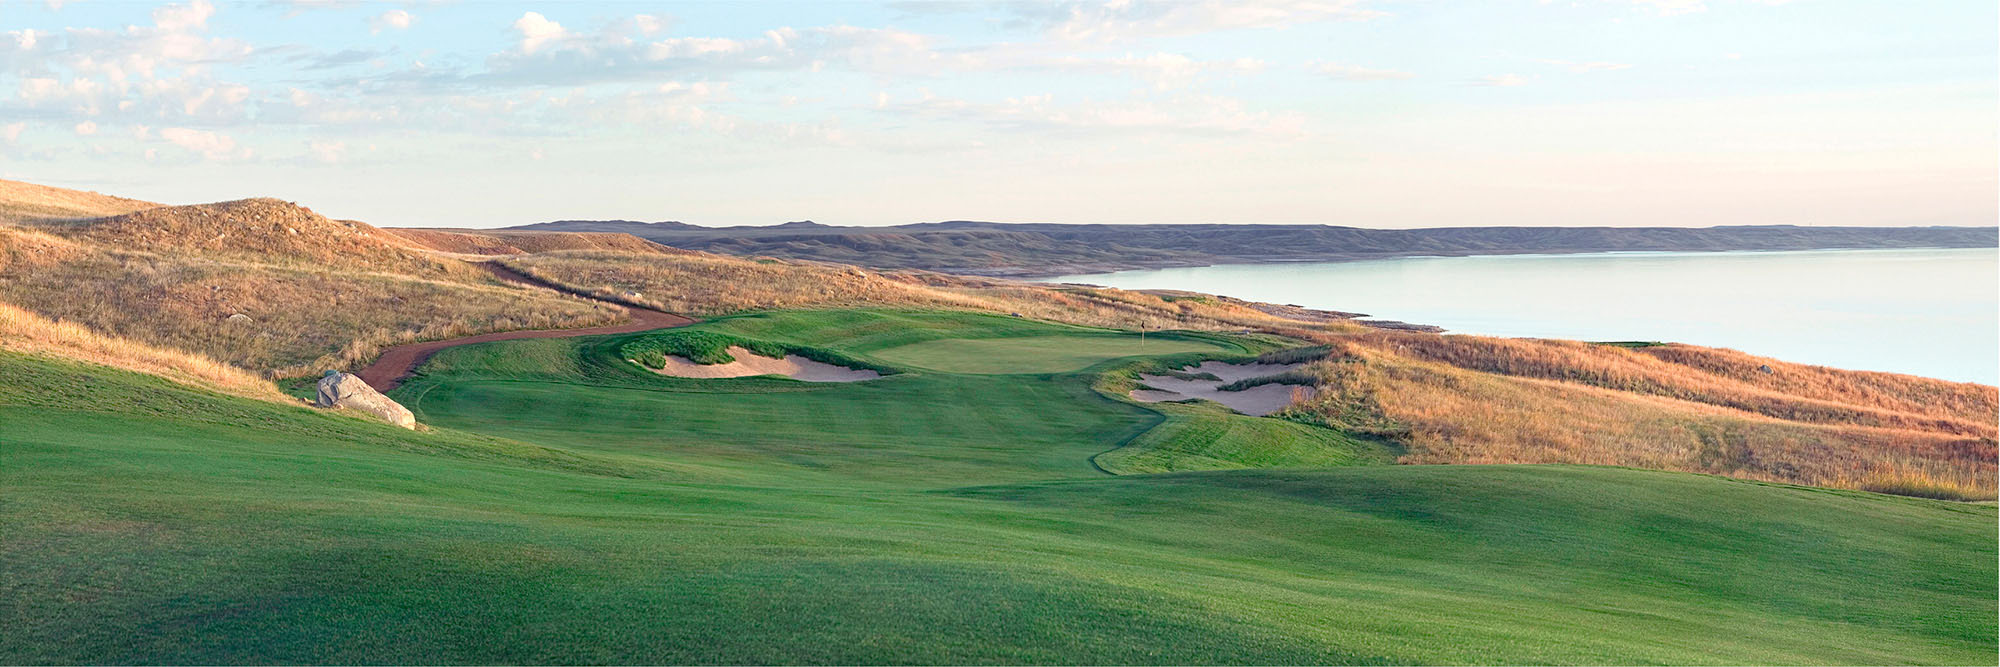 Golf Course Image - Sutton Bay No. 10